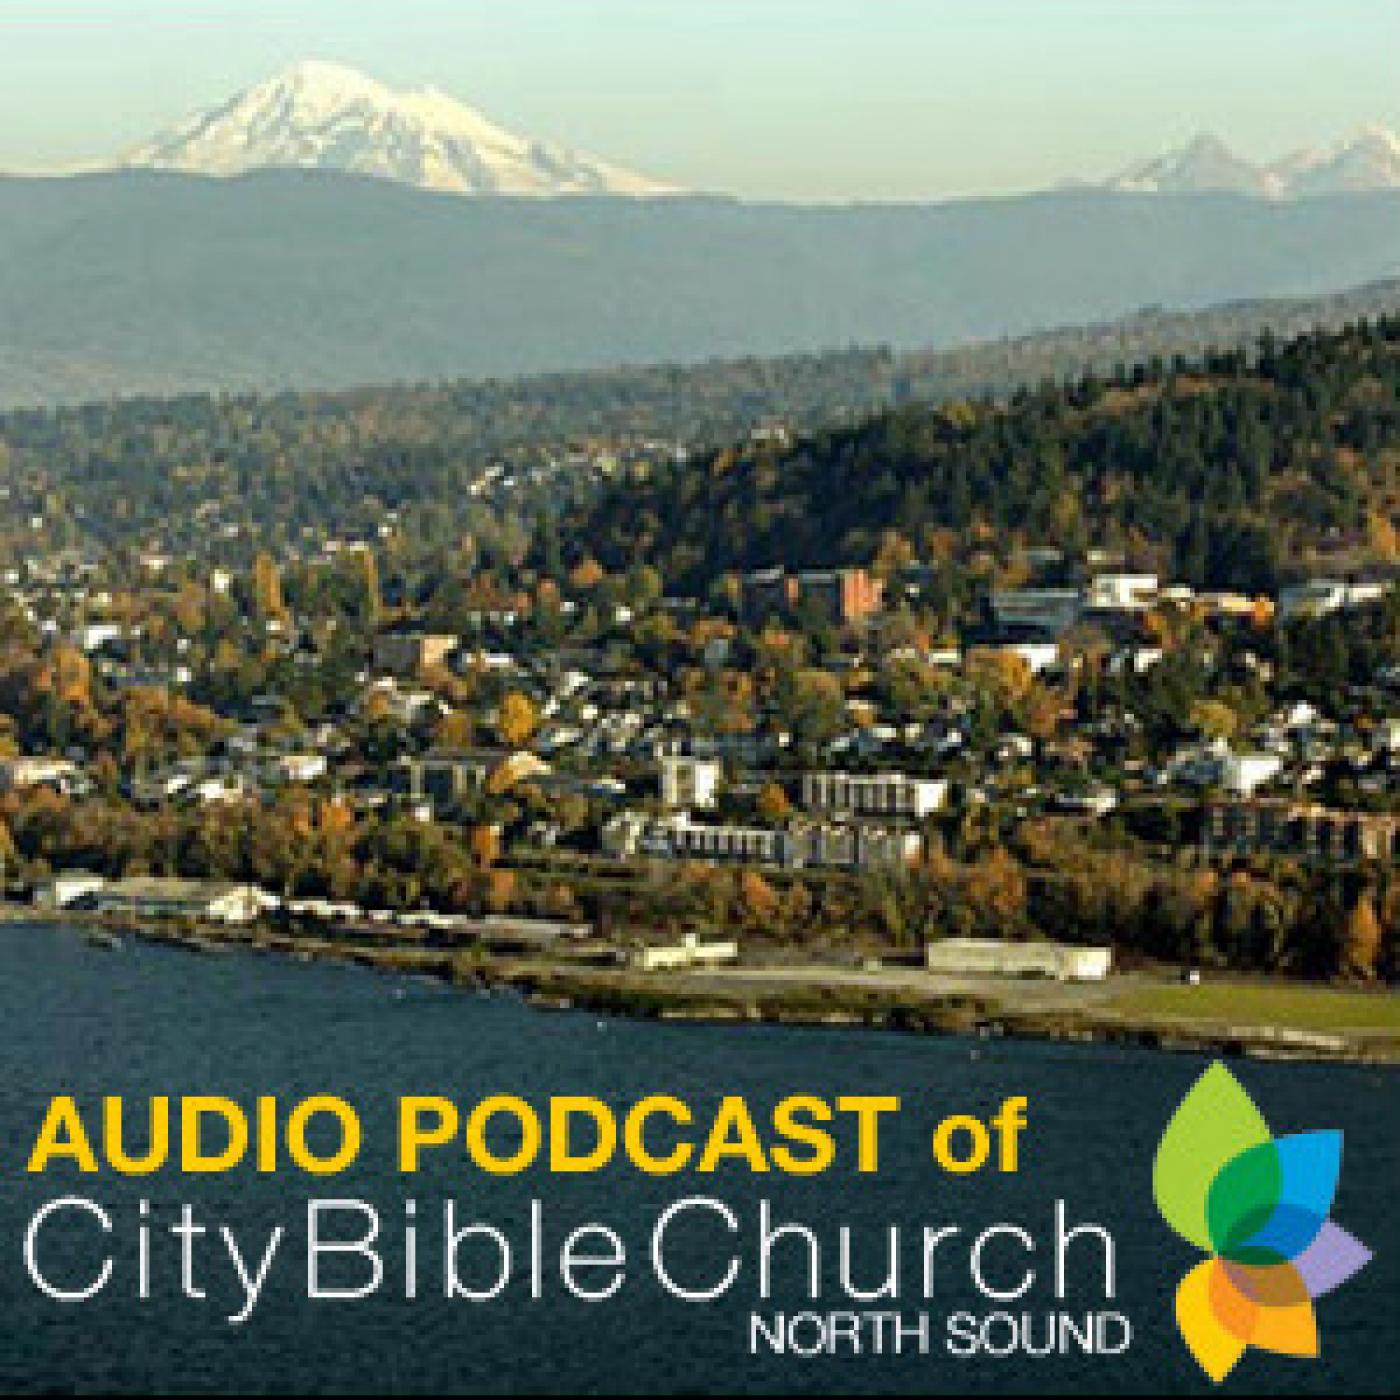 City Bible Church NORTH SOUND